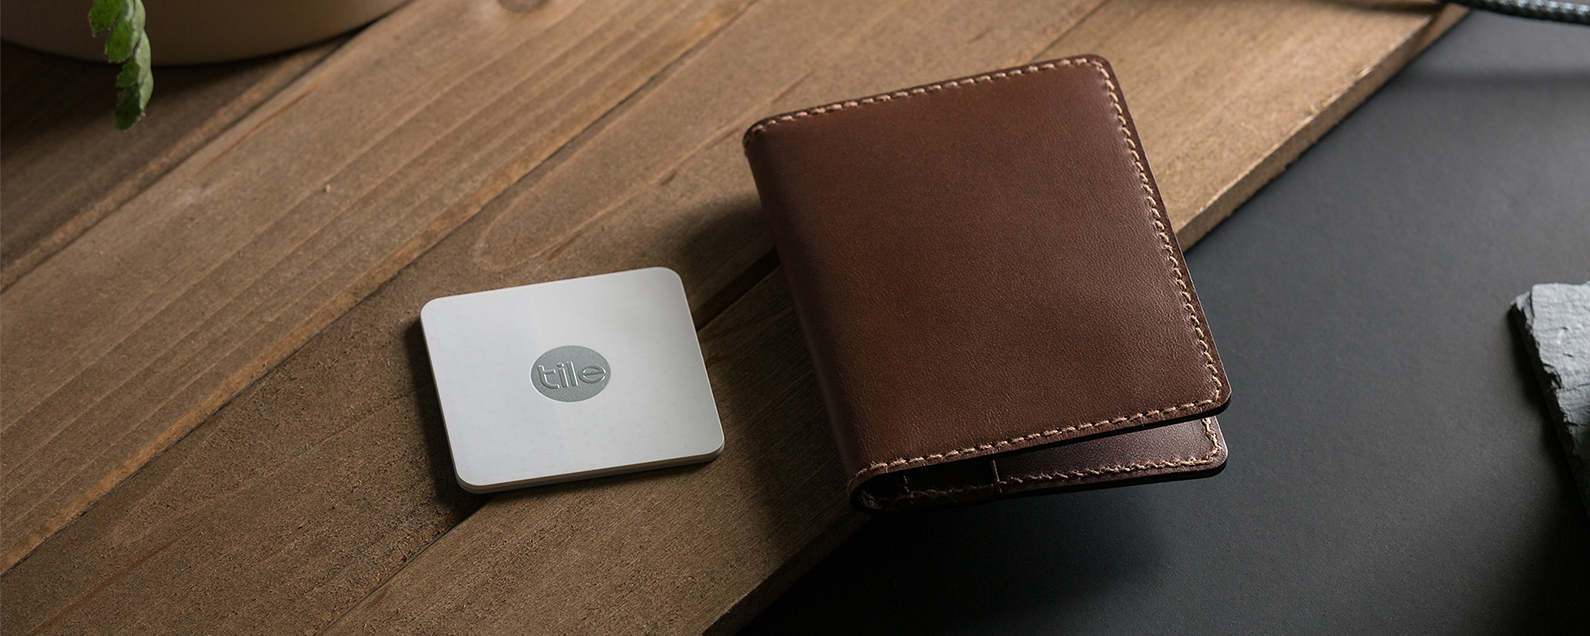 Review Compact Quality Leather Wallet With Tile Tracker